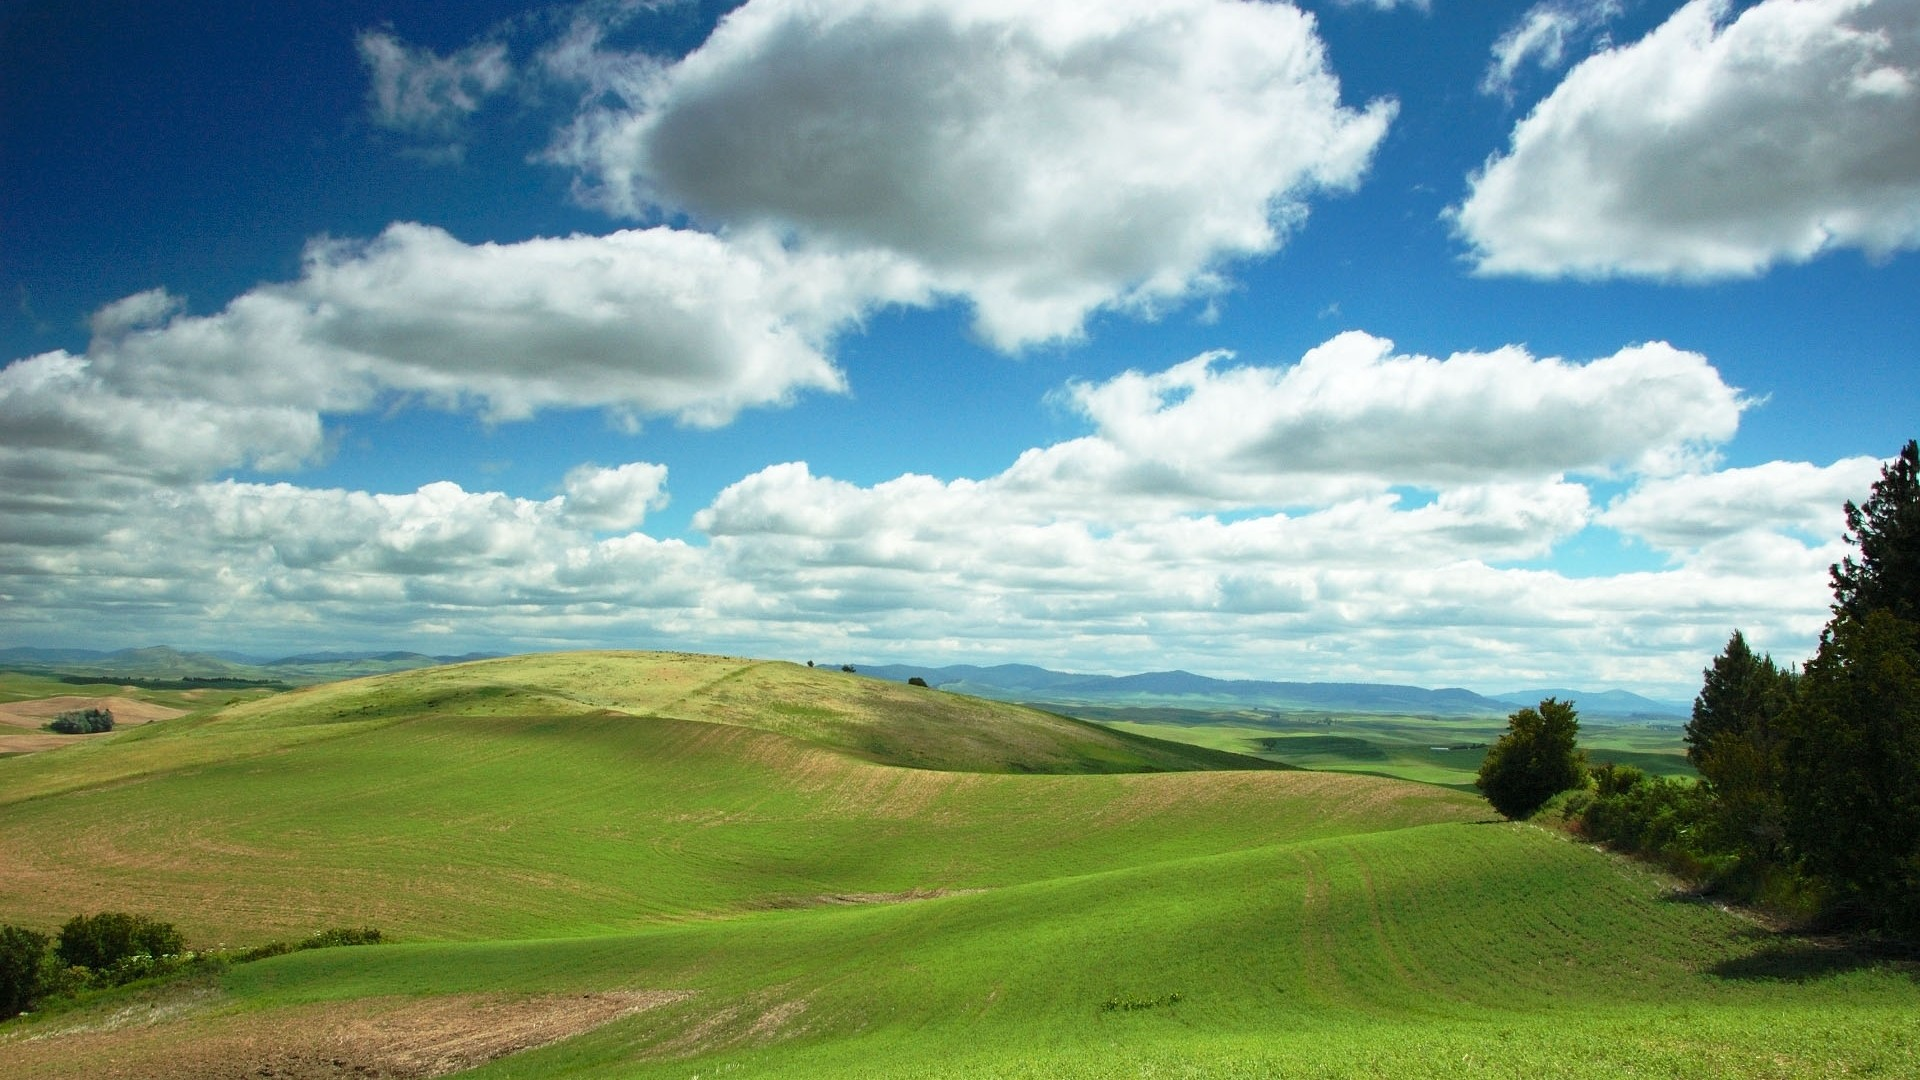 Landscape Free Download PC Background